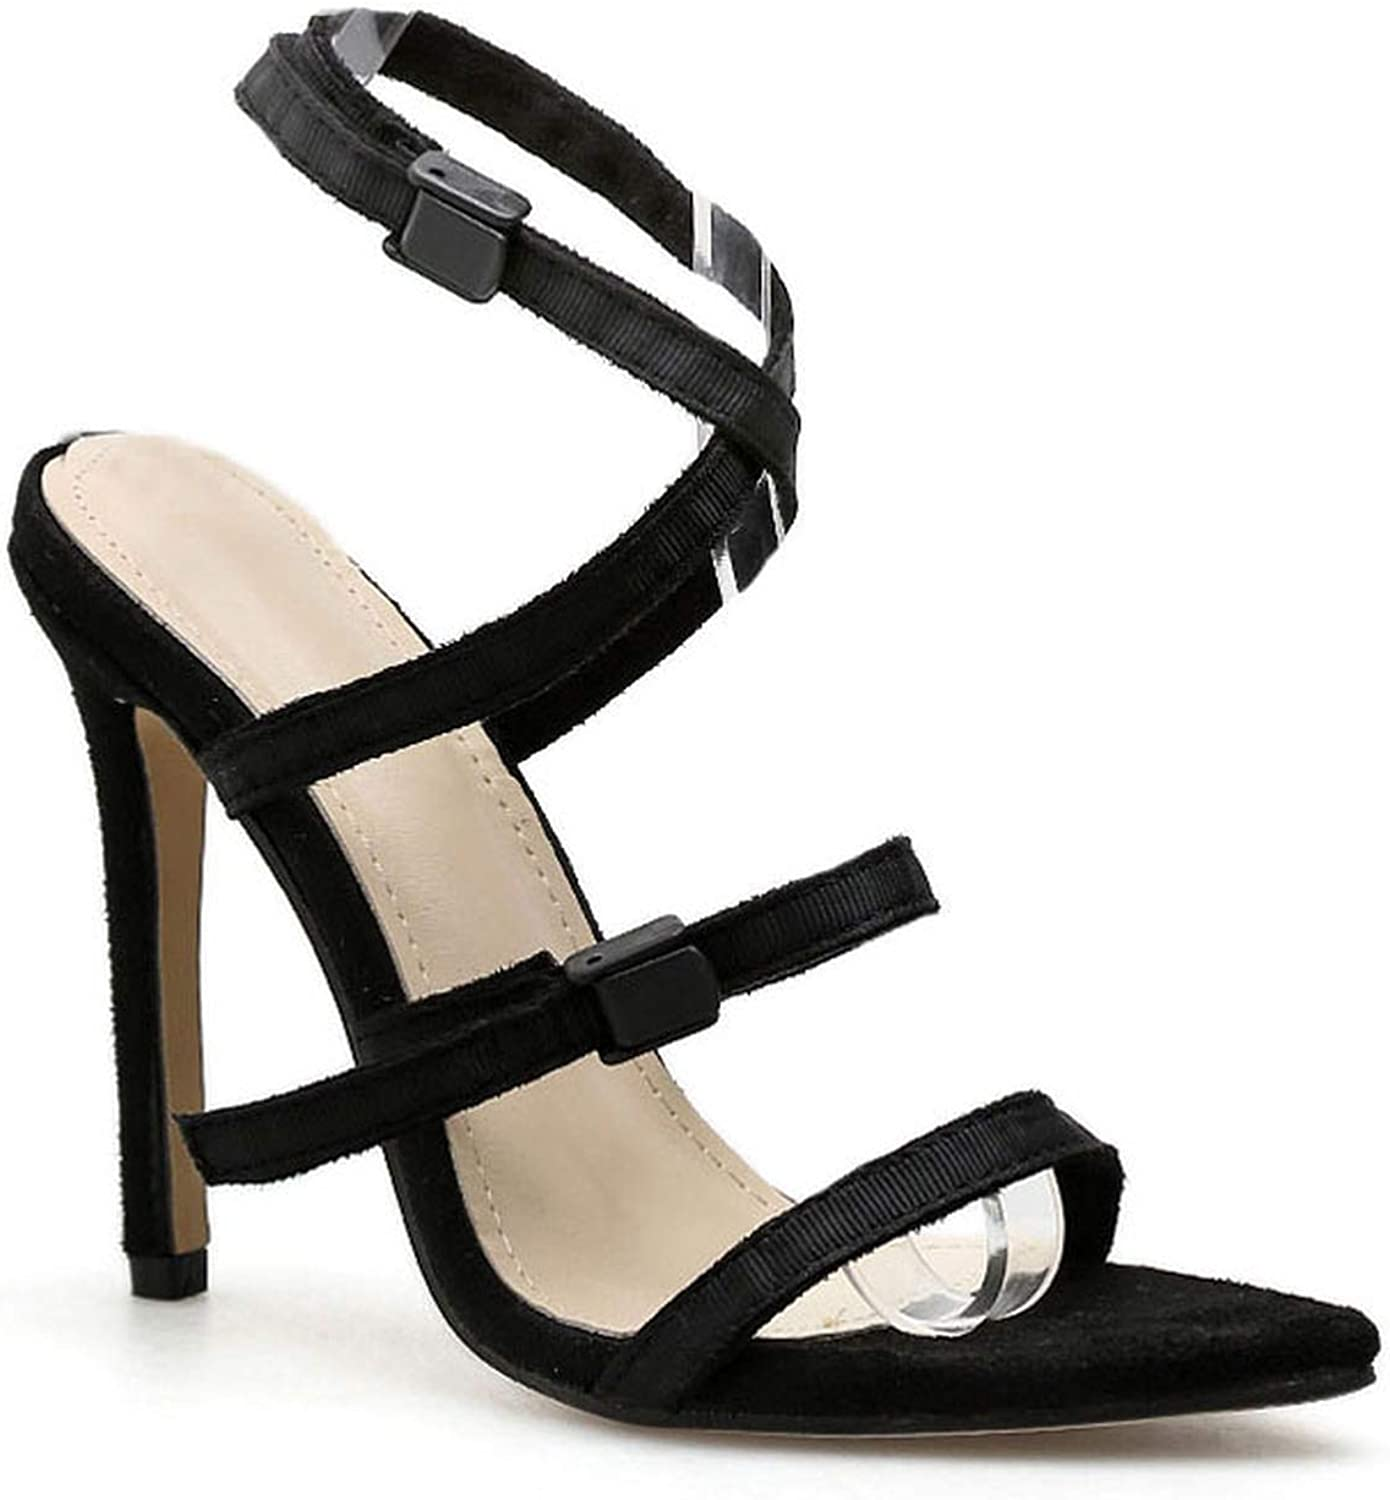 Women Sandals High Heels Point Toe Summer Plastic Buckle Sexy Party Ladies shoes Thin Heel Sandalie